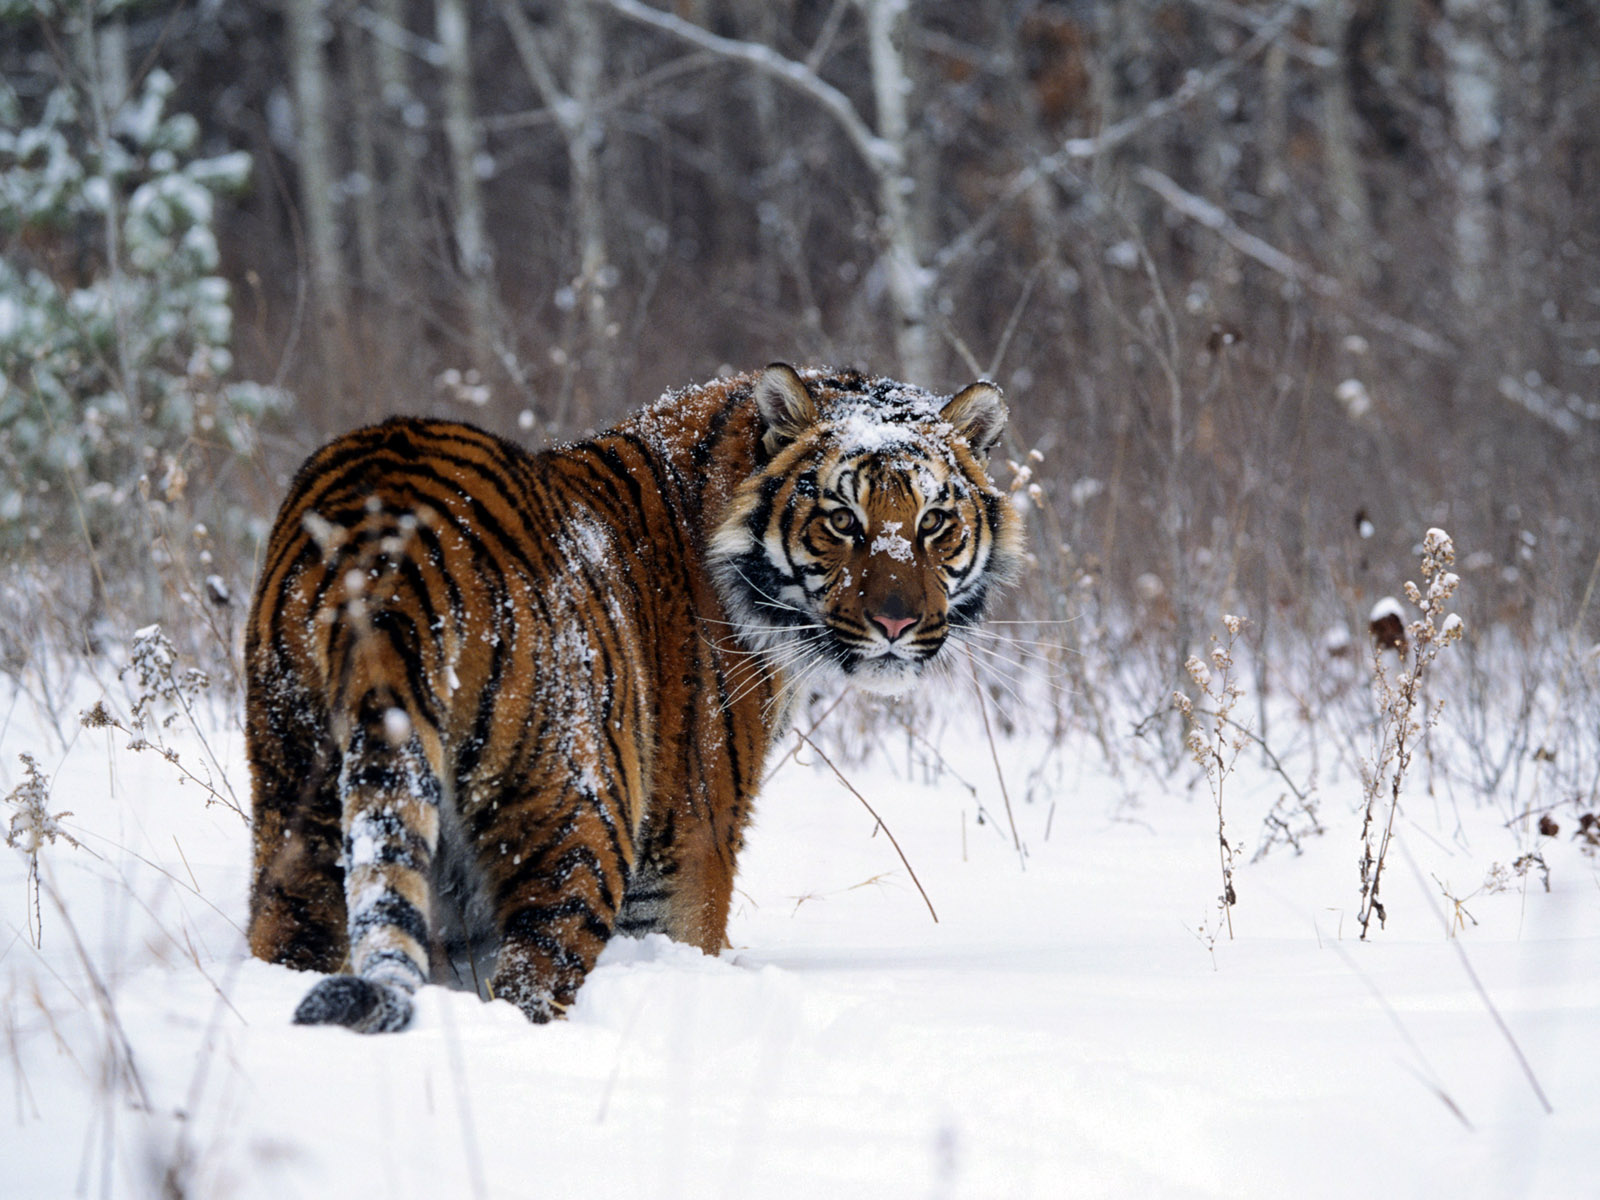 Tiger in Snow 712.42 Kb